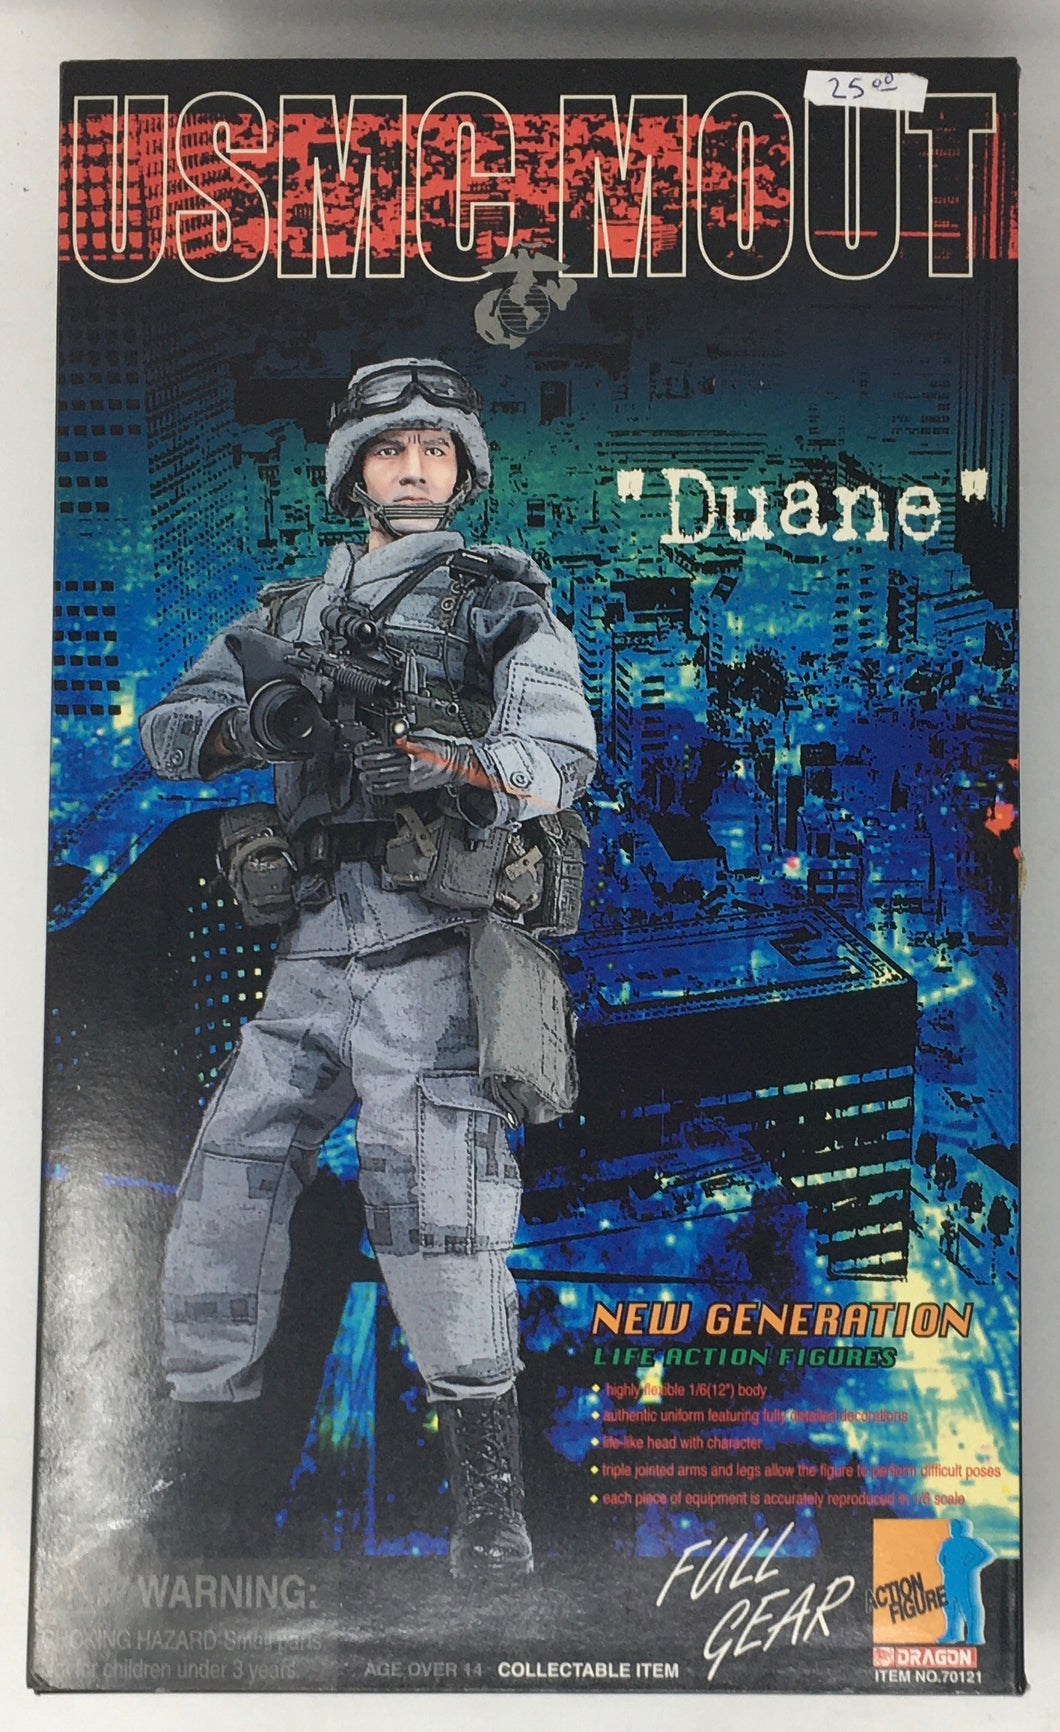 Dragon USMC Duane